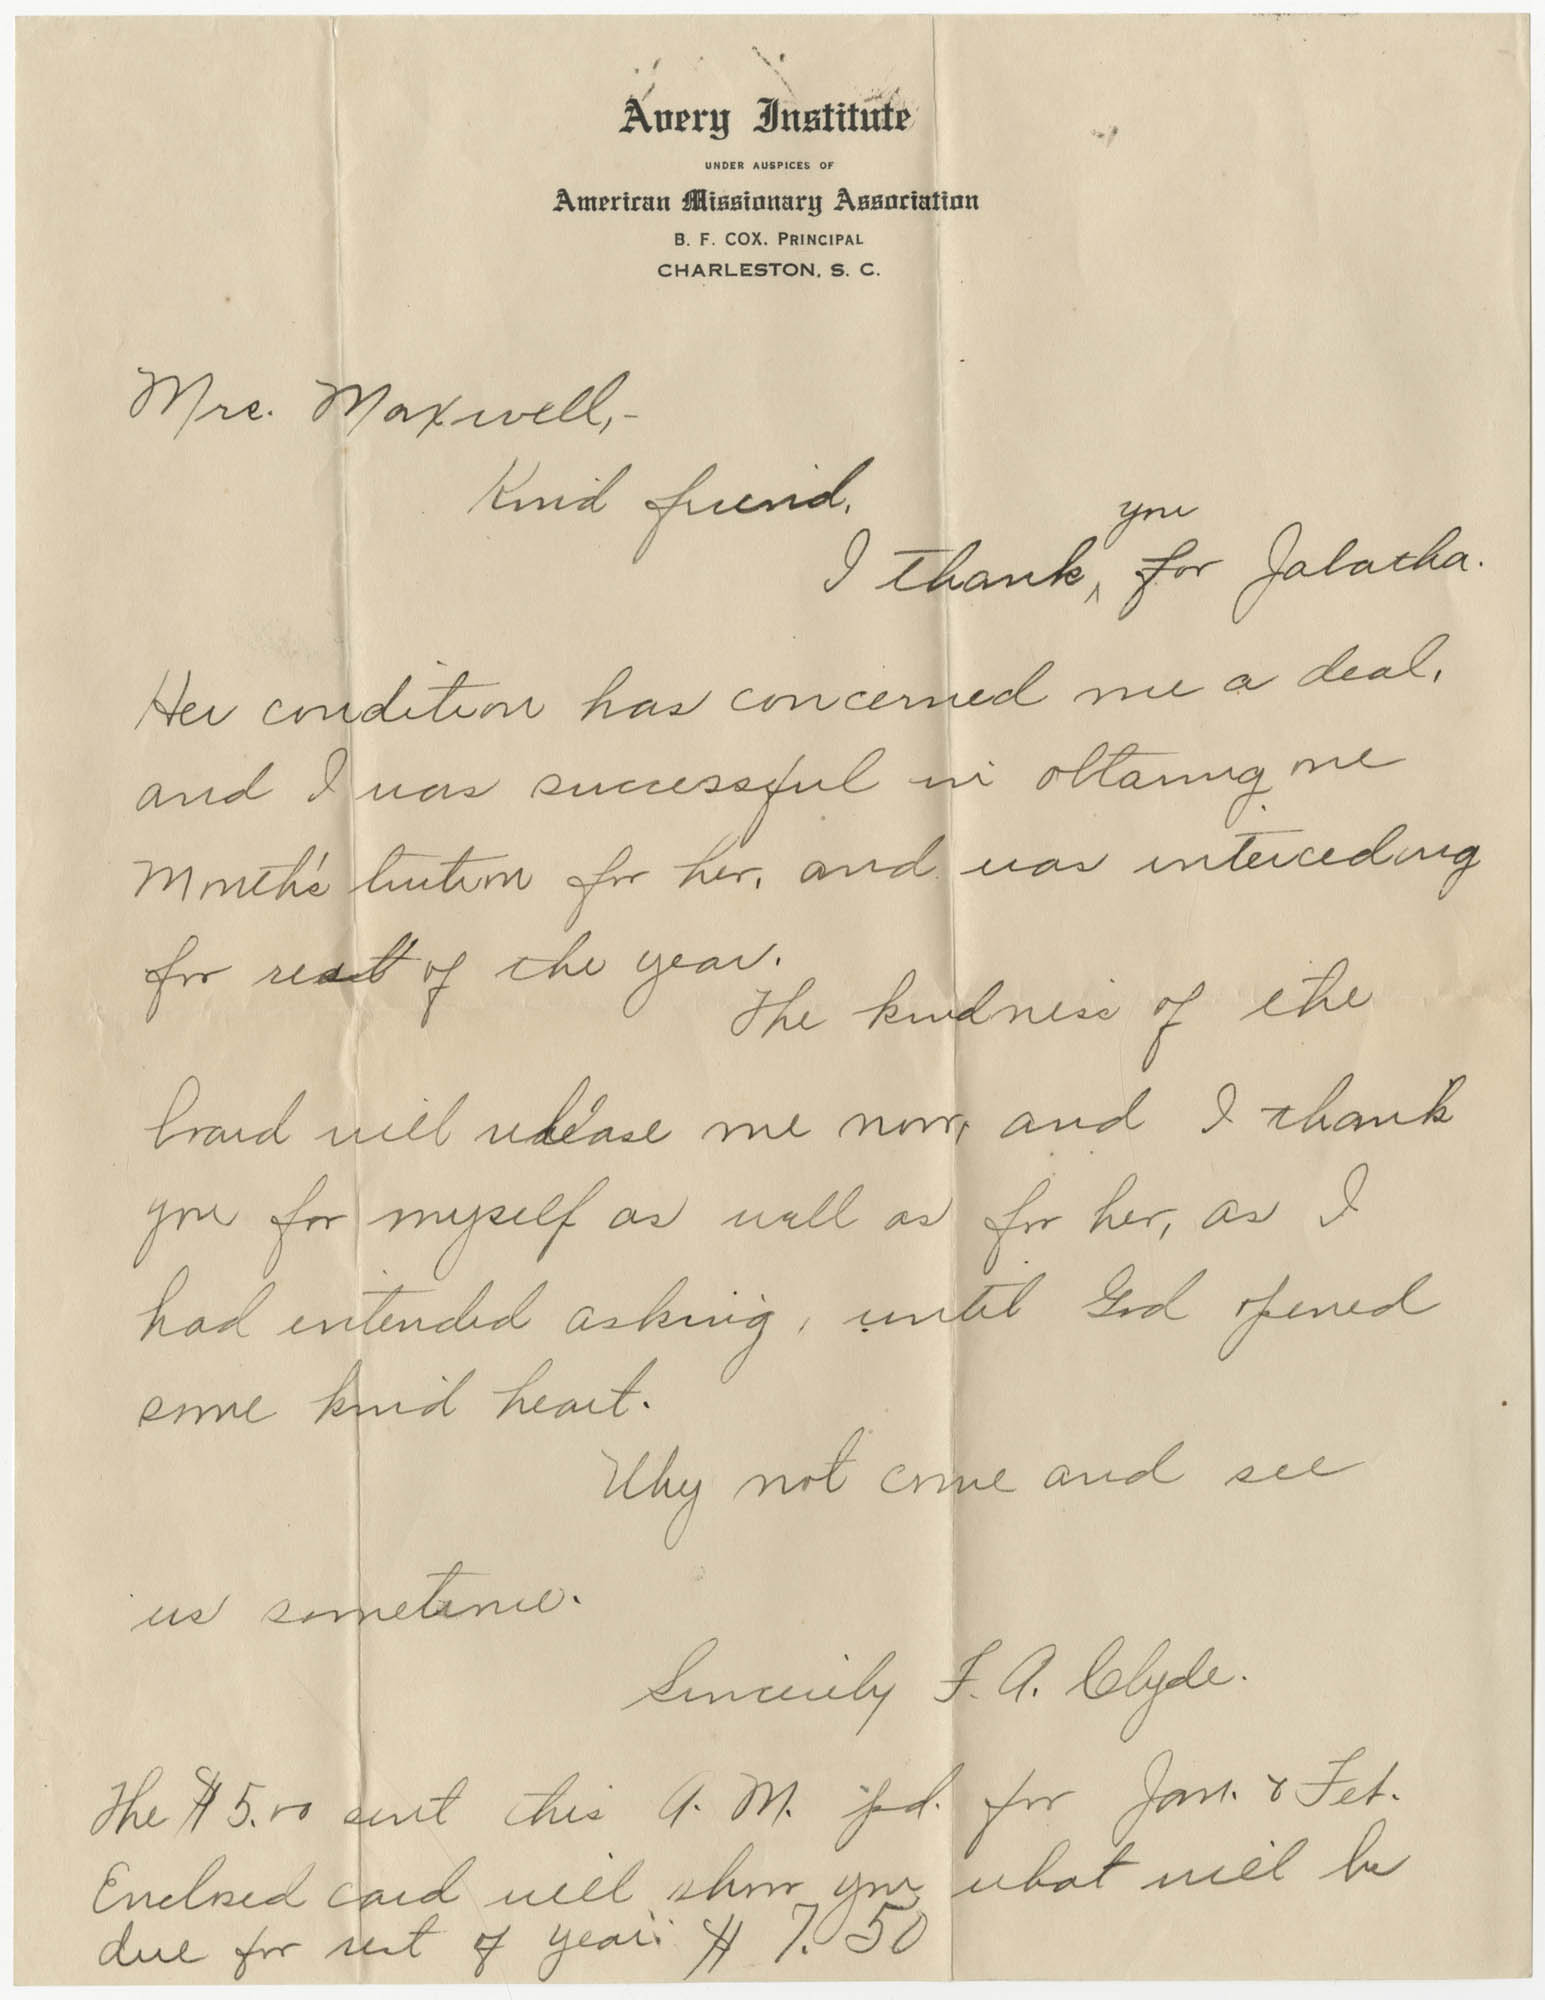 Letter from F. A. Clyde to